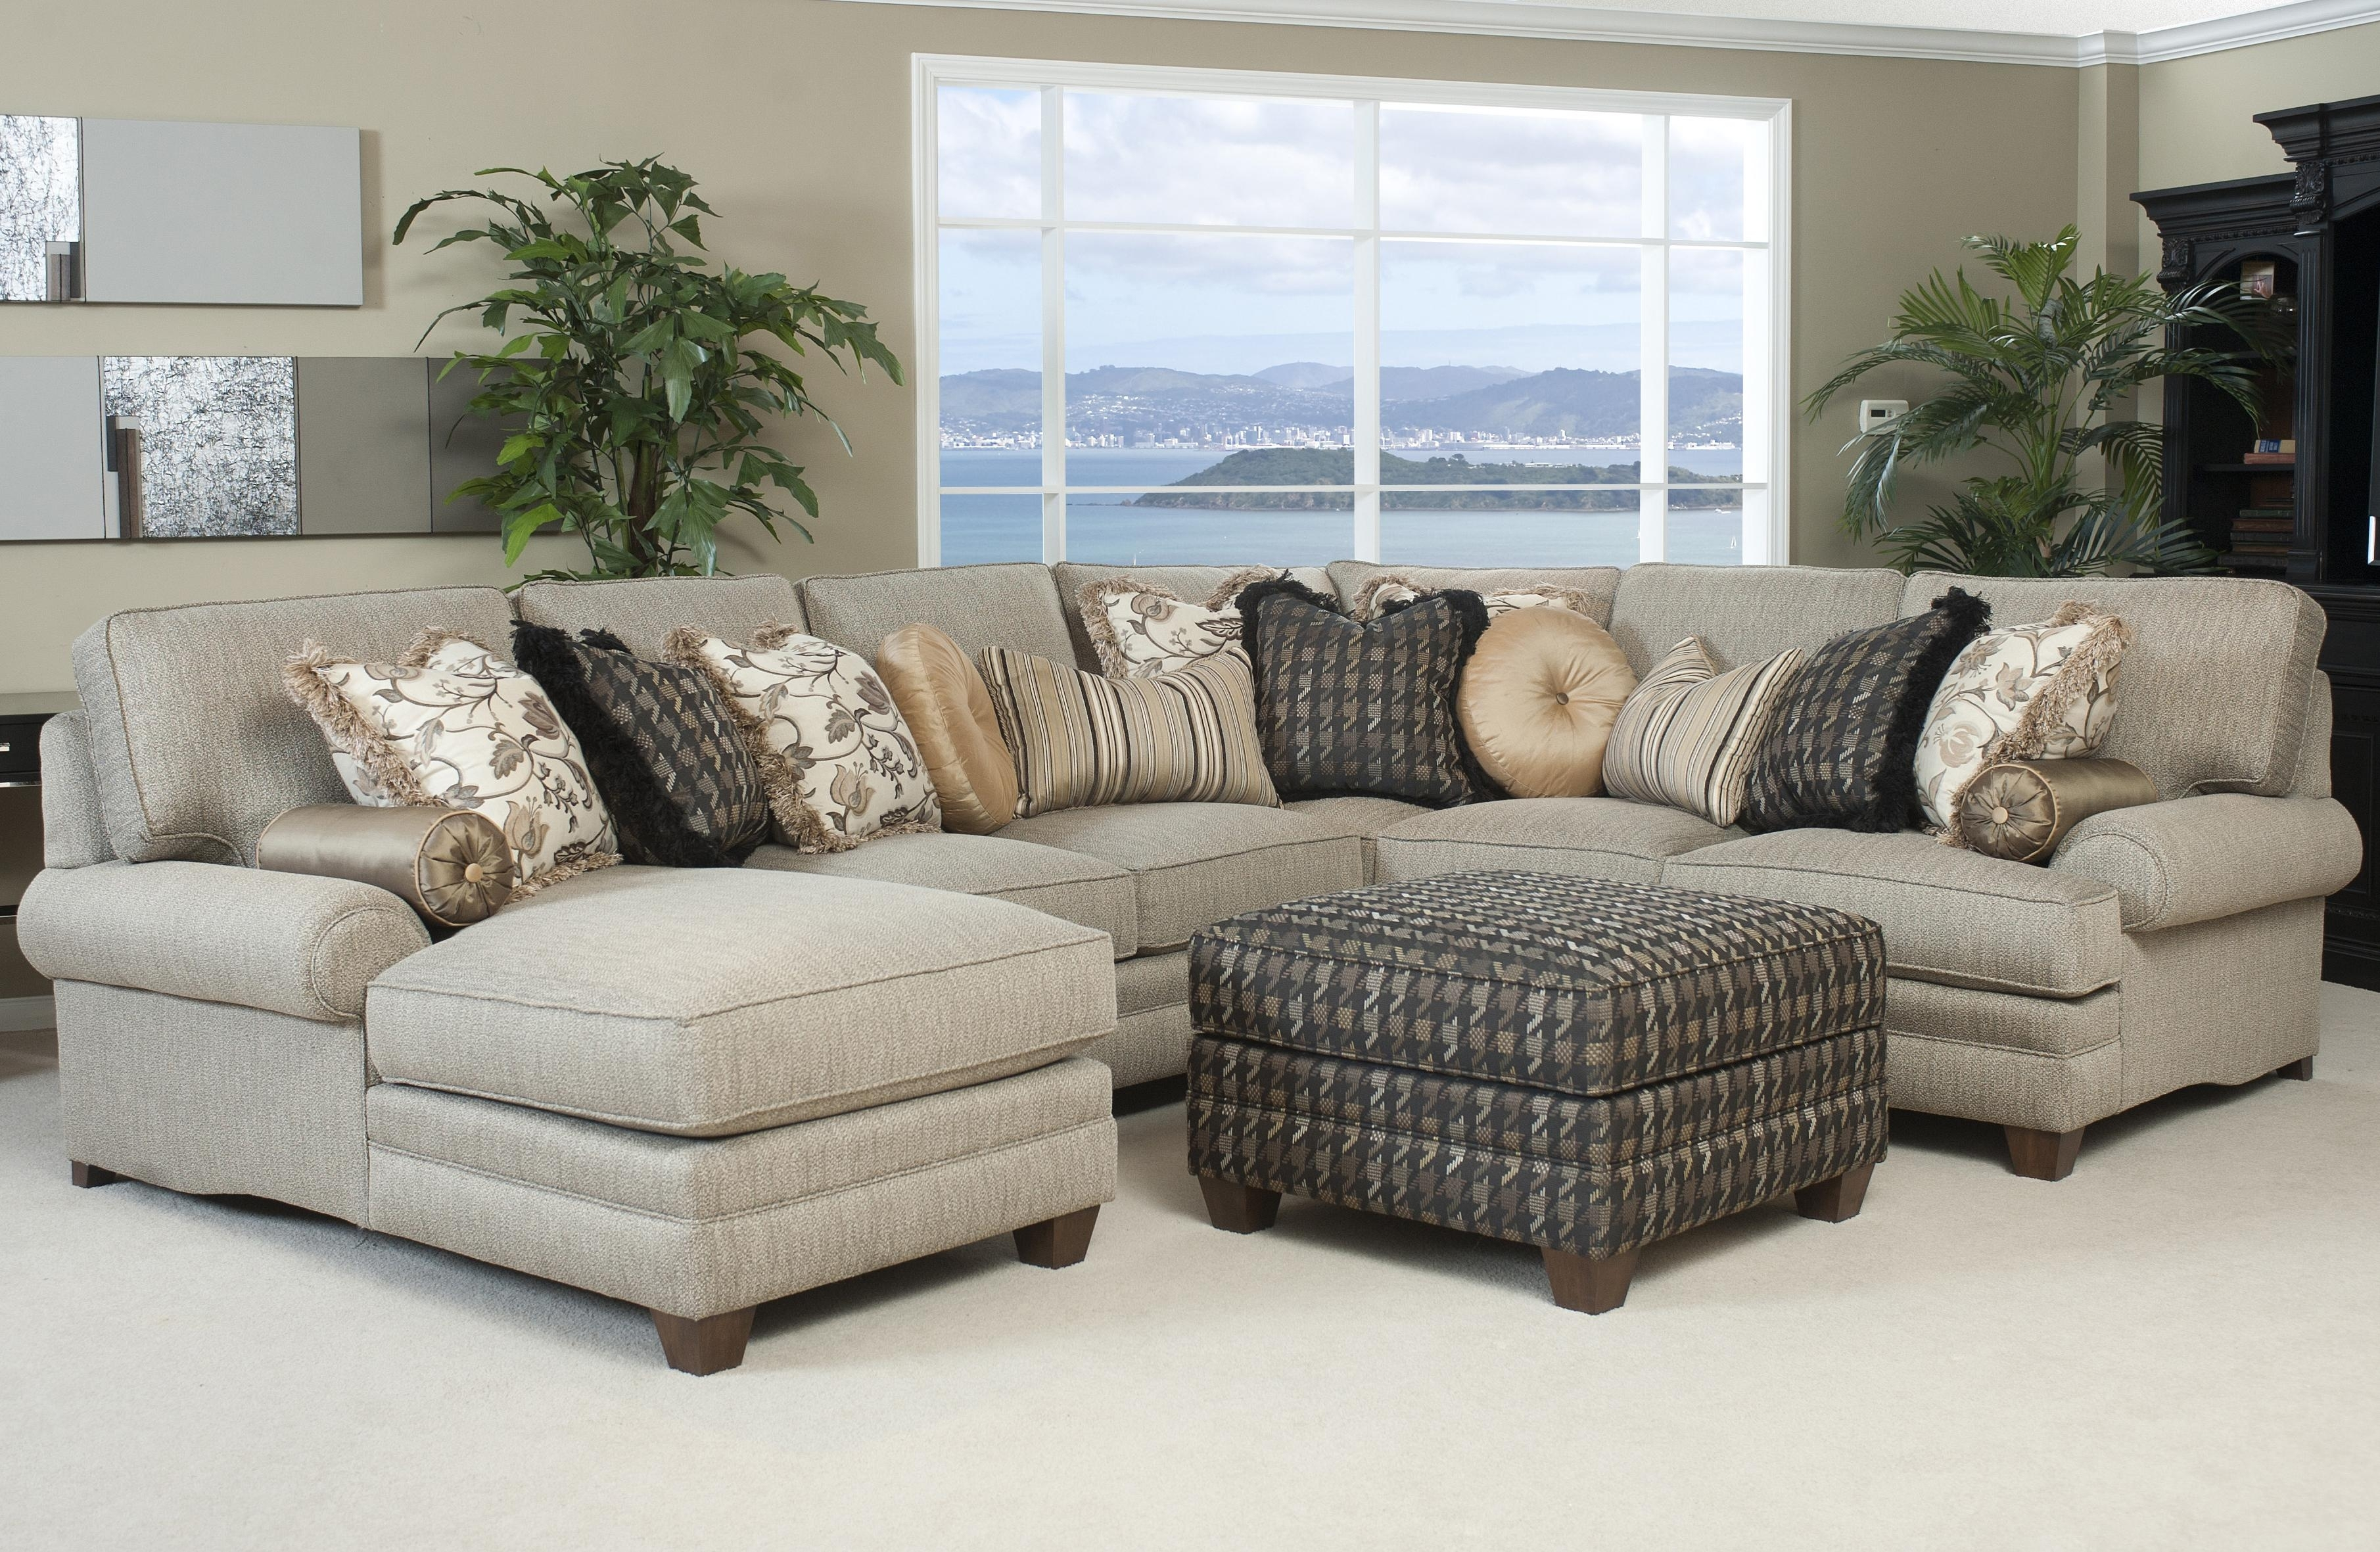 Featured Image of Sectional Sofas With Chaise Lounge And Ottoman